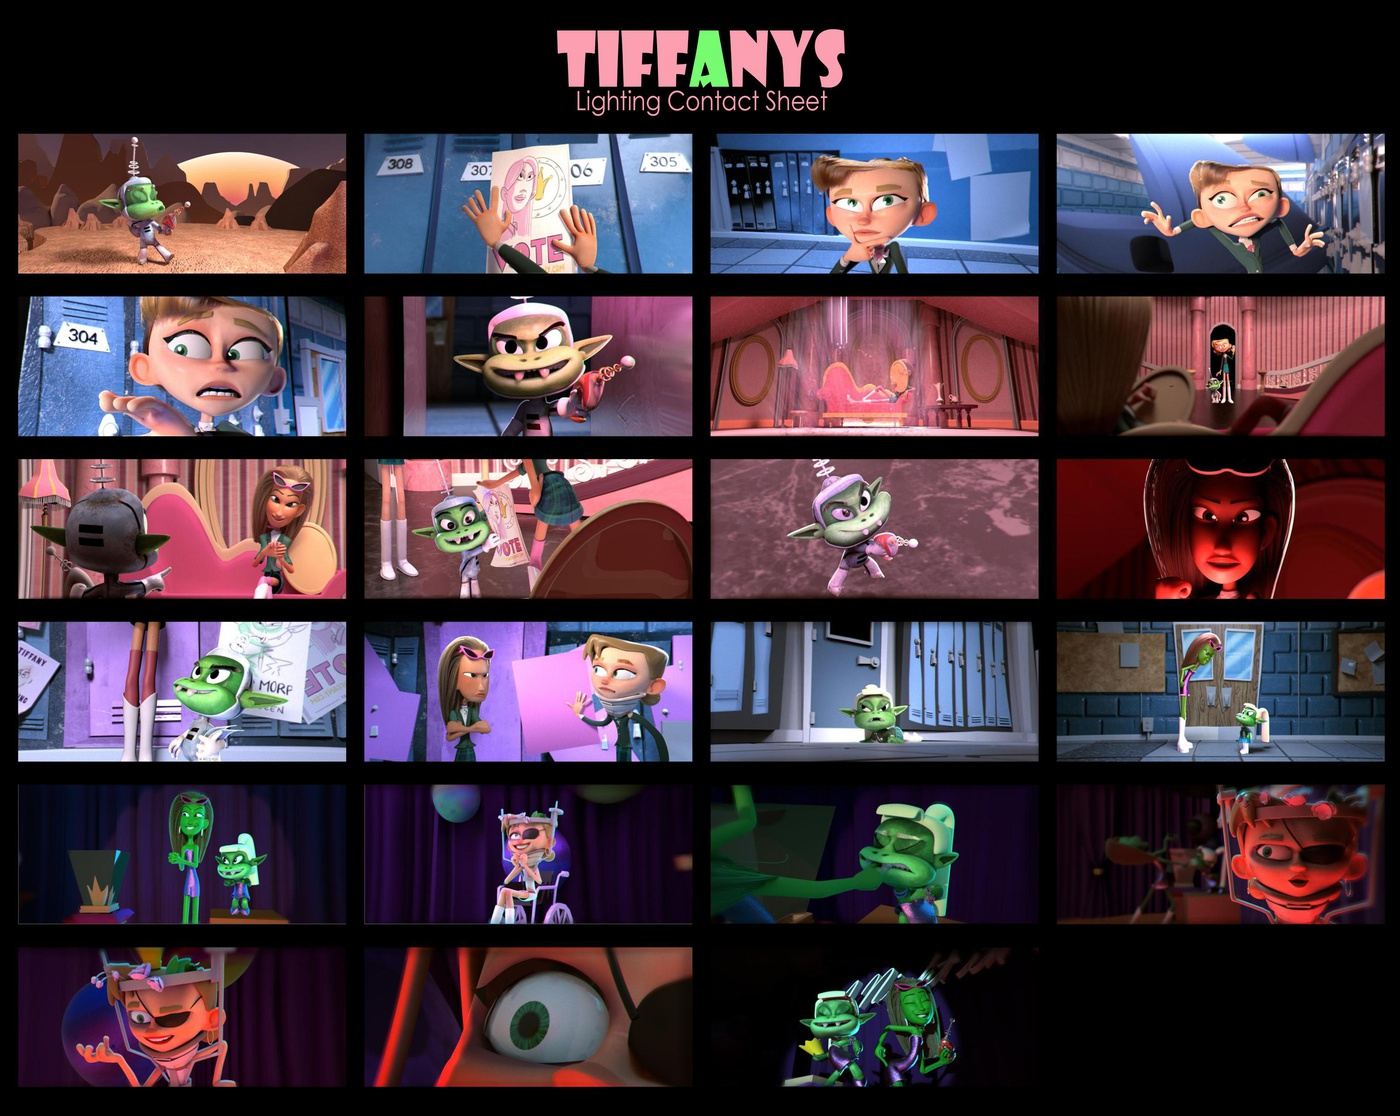 storyboarding contact sheet thesis lighting tifanny's